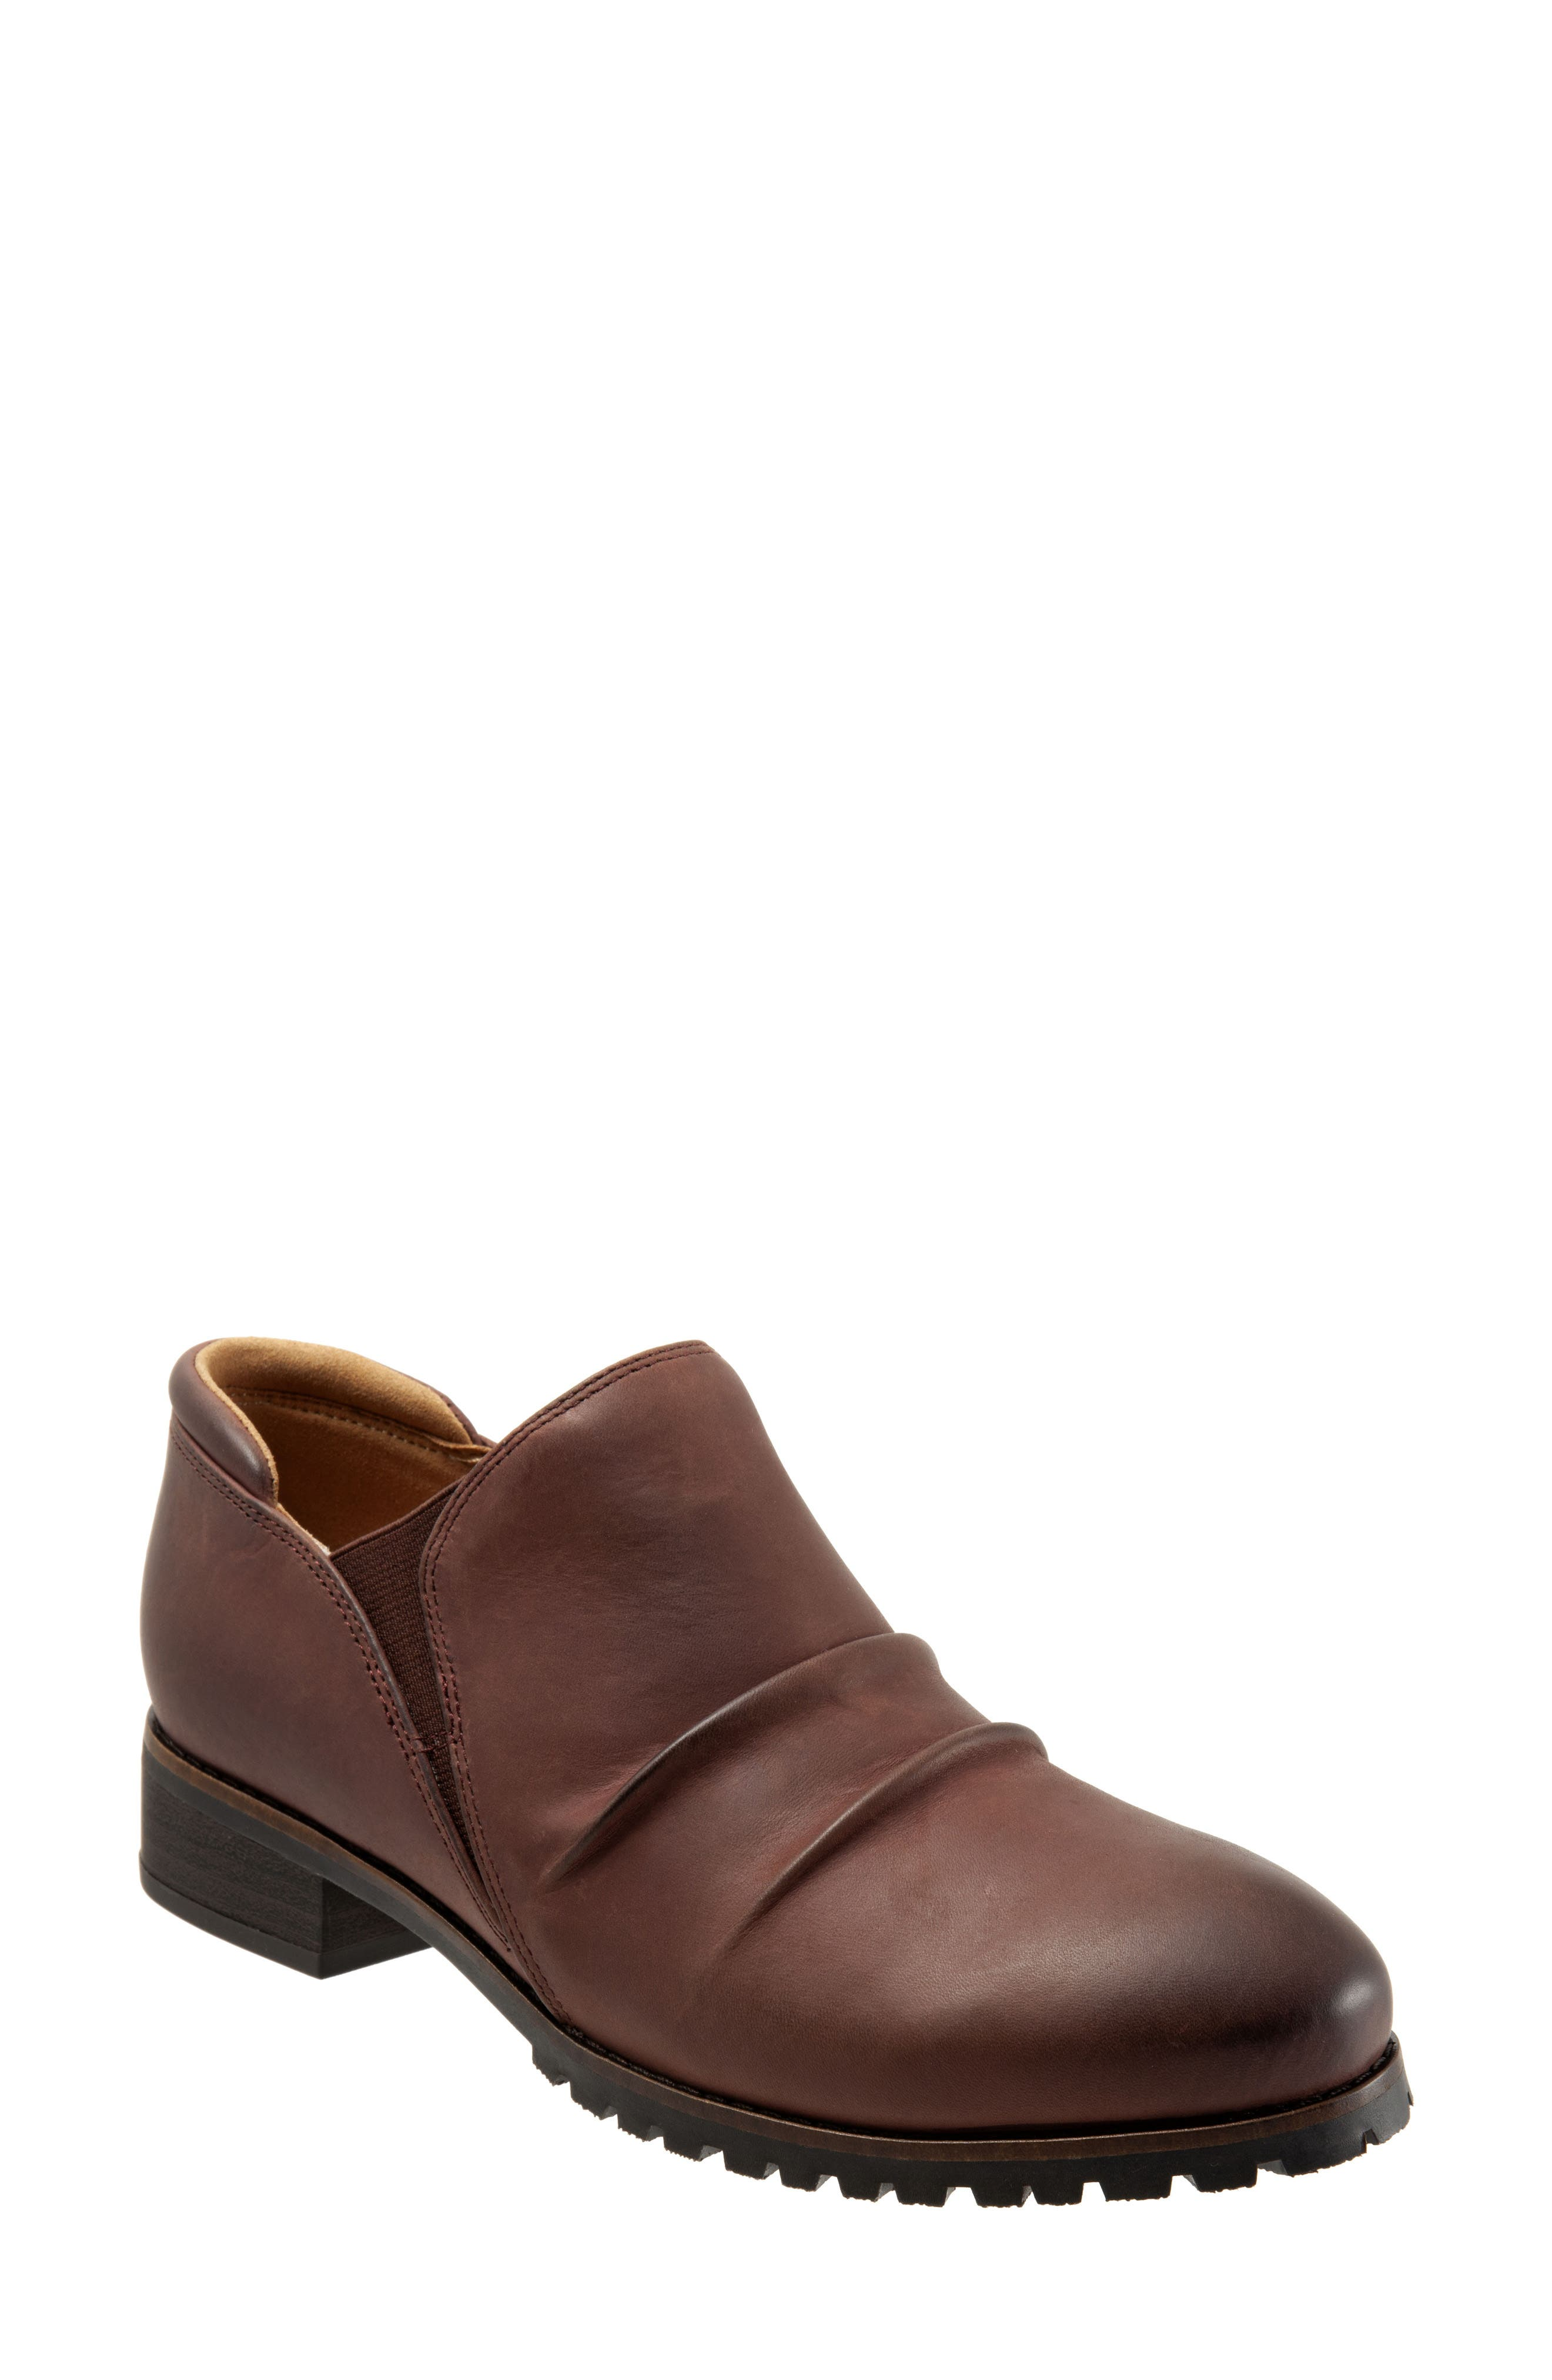 Softwalk Mara Ankle Boot- Brown